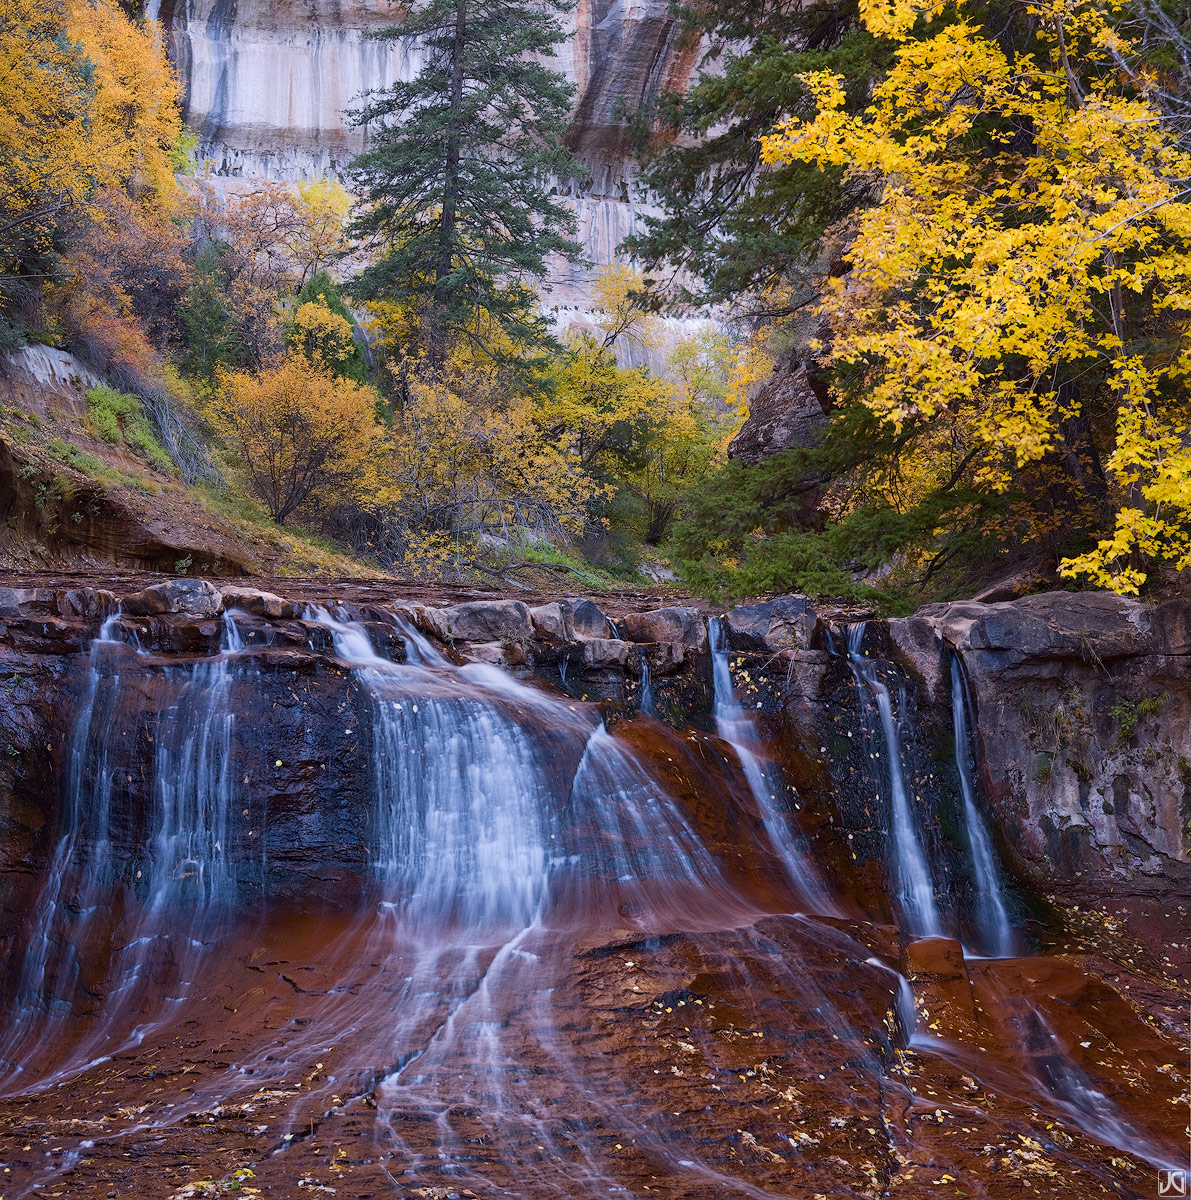 Peaking autumn colors line the Left Fork and surround this wondeful waterfall in Zion's backcountry.